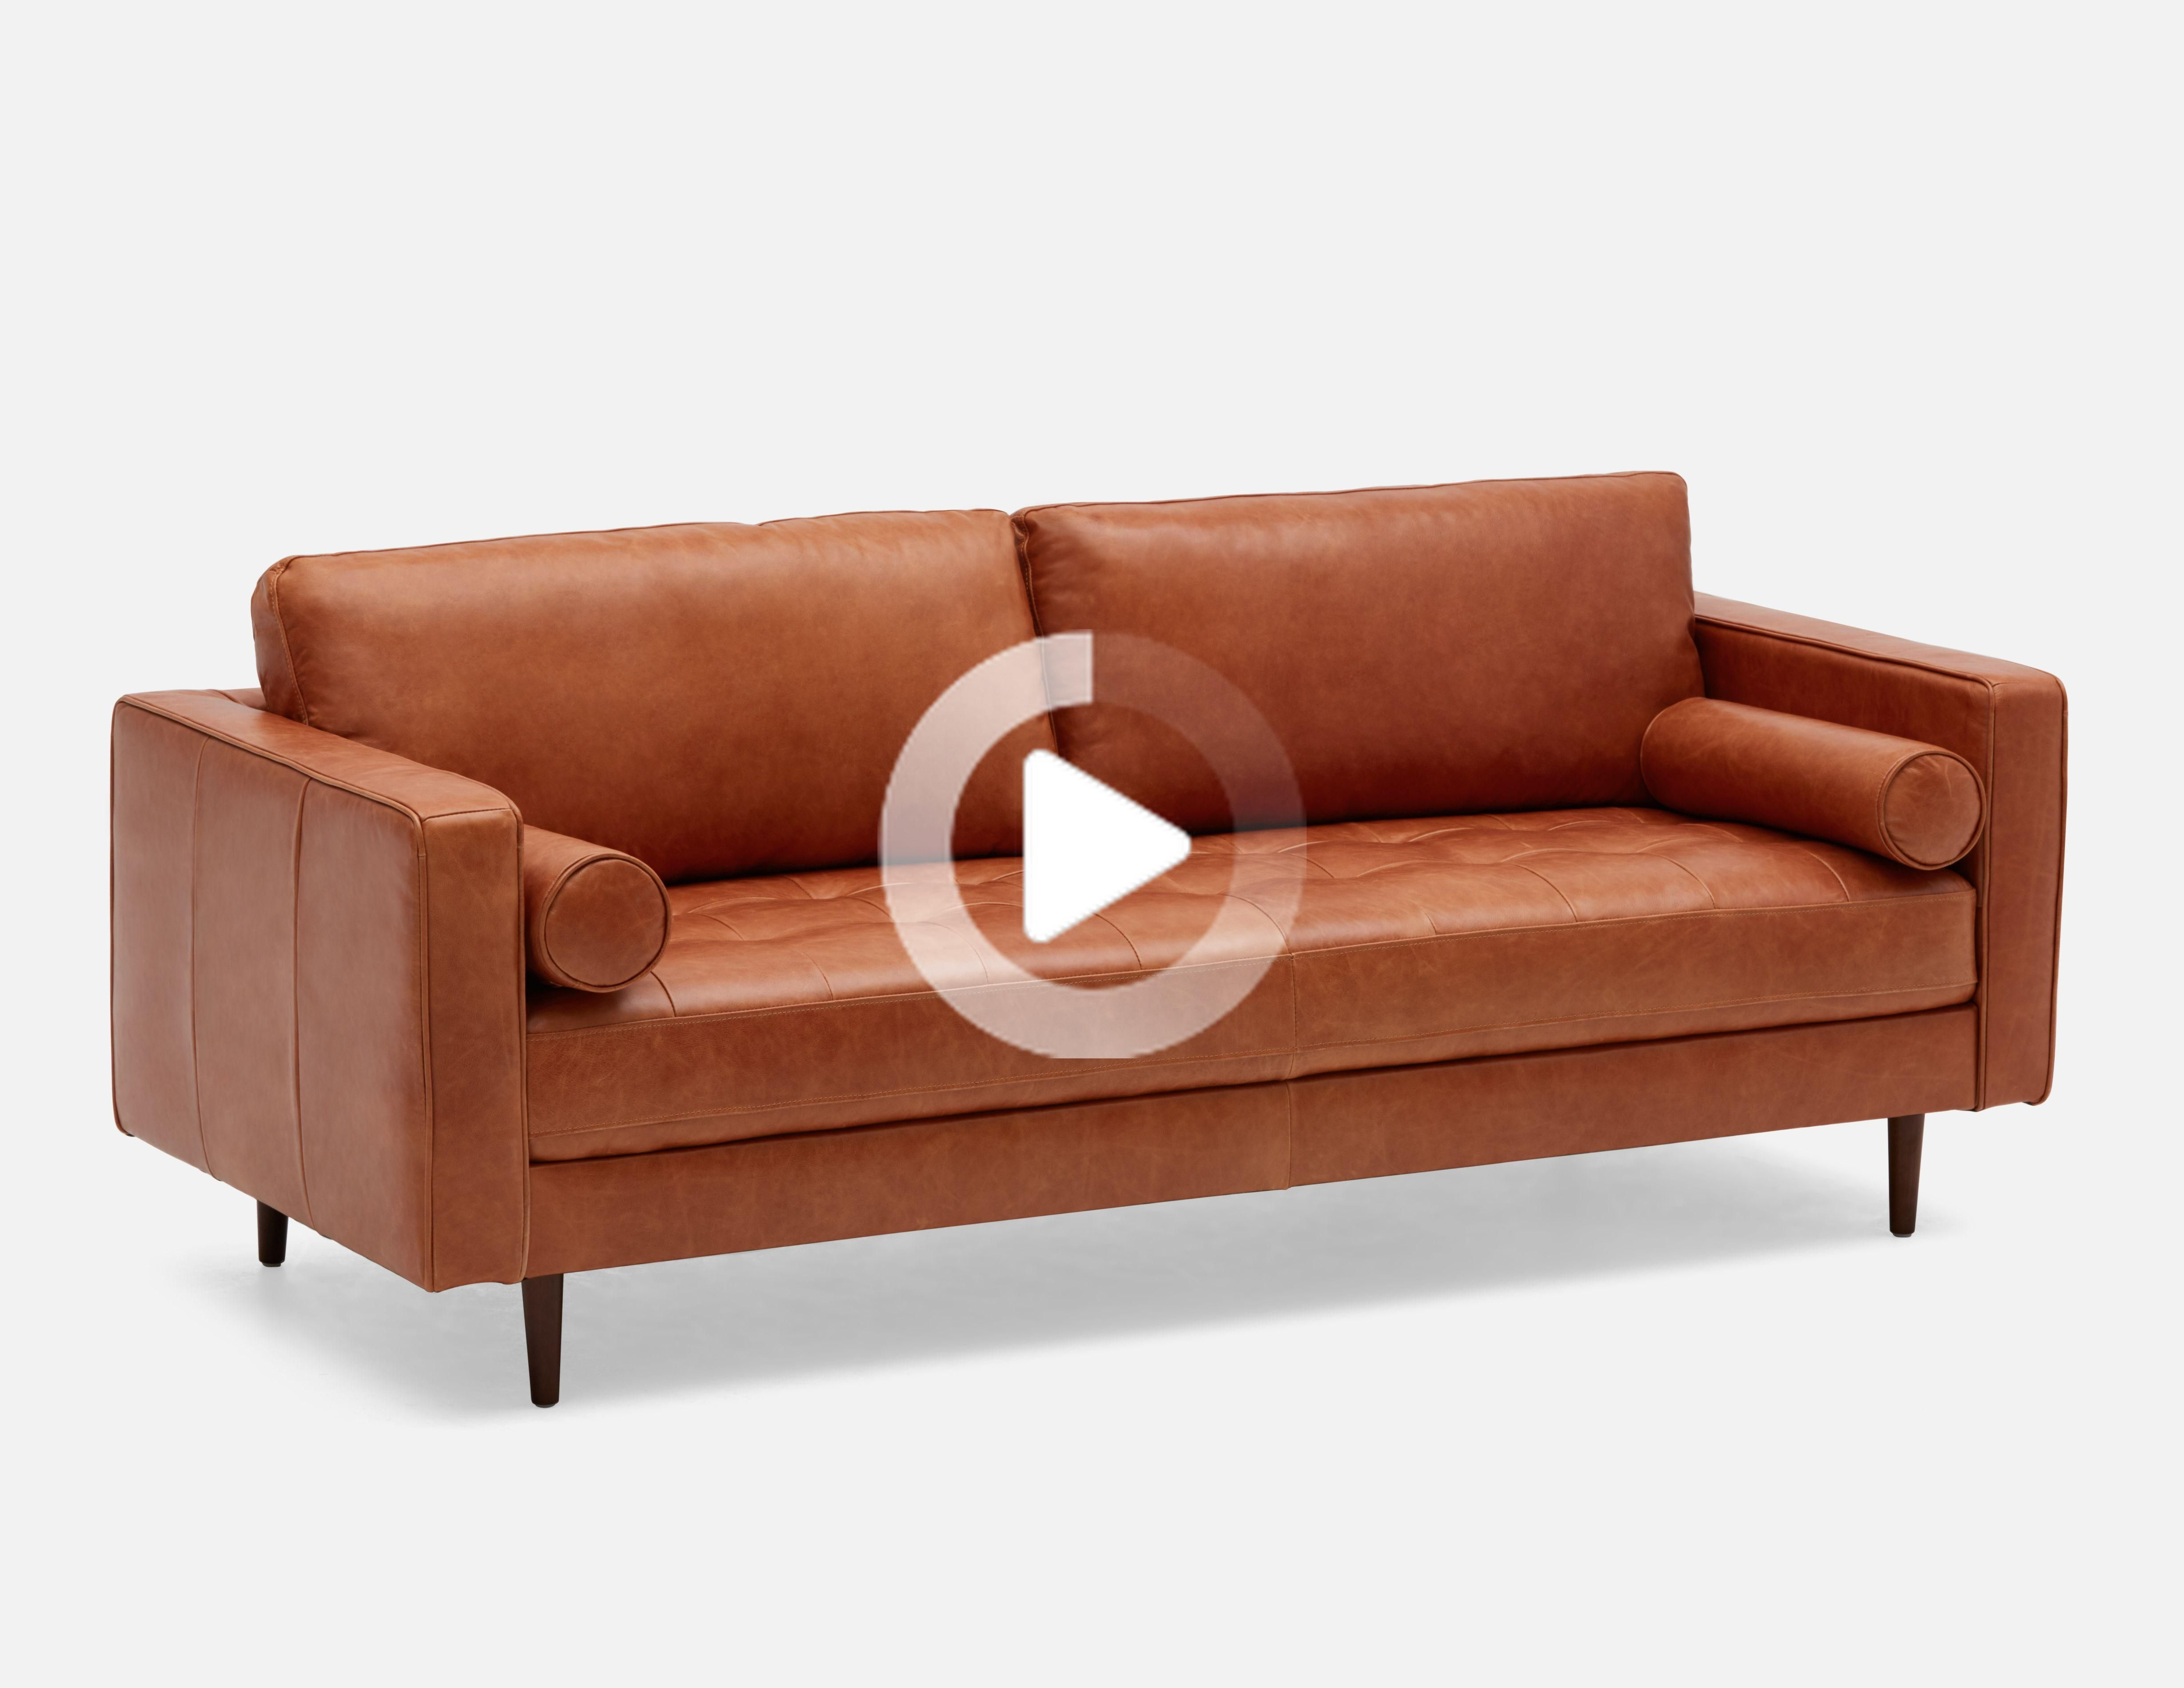 Structube Copper 100 Leather 3 Seater Sofa Kinsey En 2020 Relooking Chambre Canape 3 Places Canape